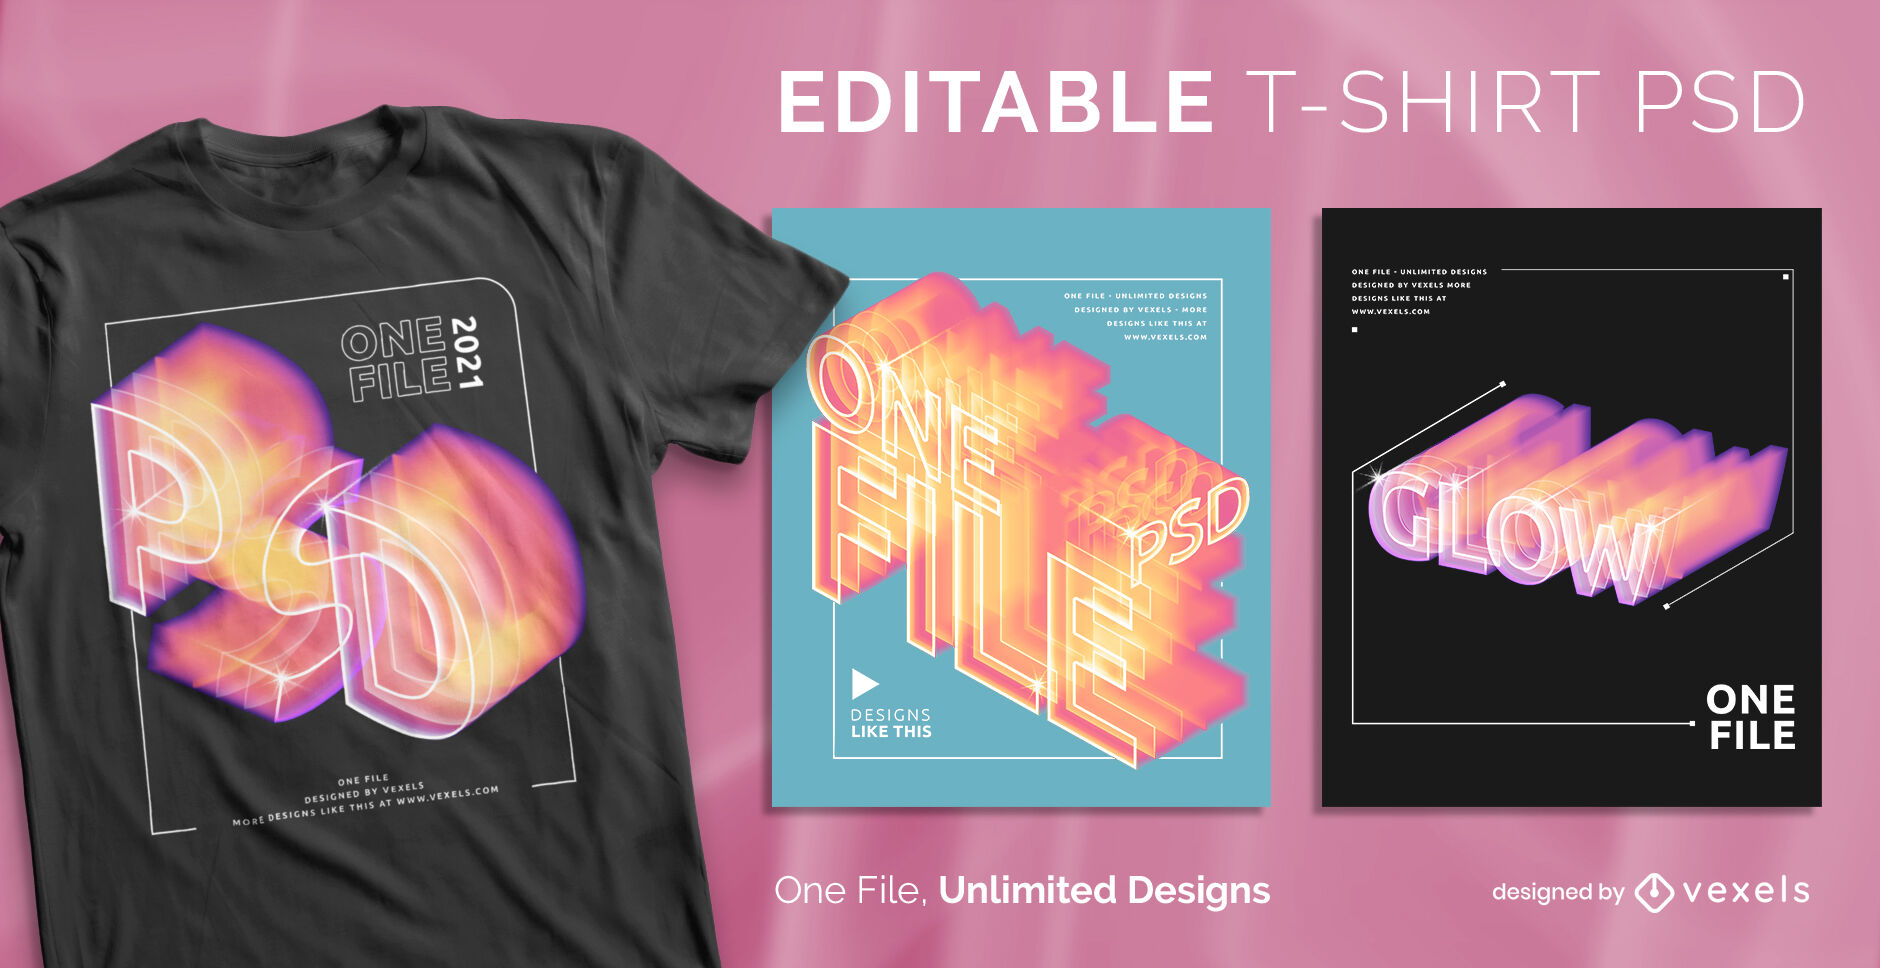 Text glow and gradient effects scalable psd t-shirt